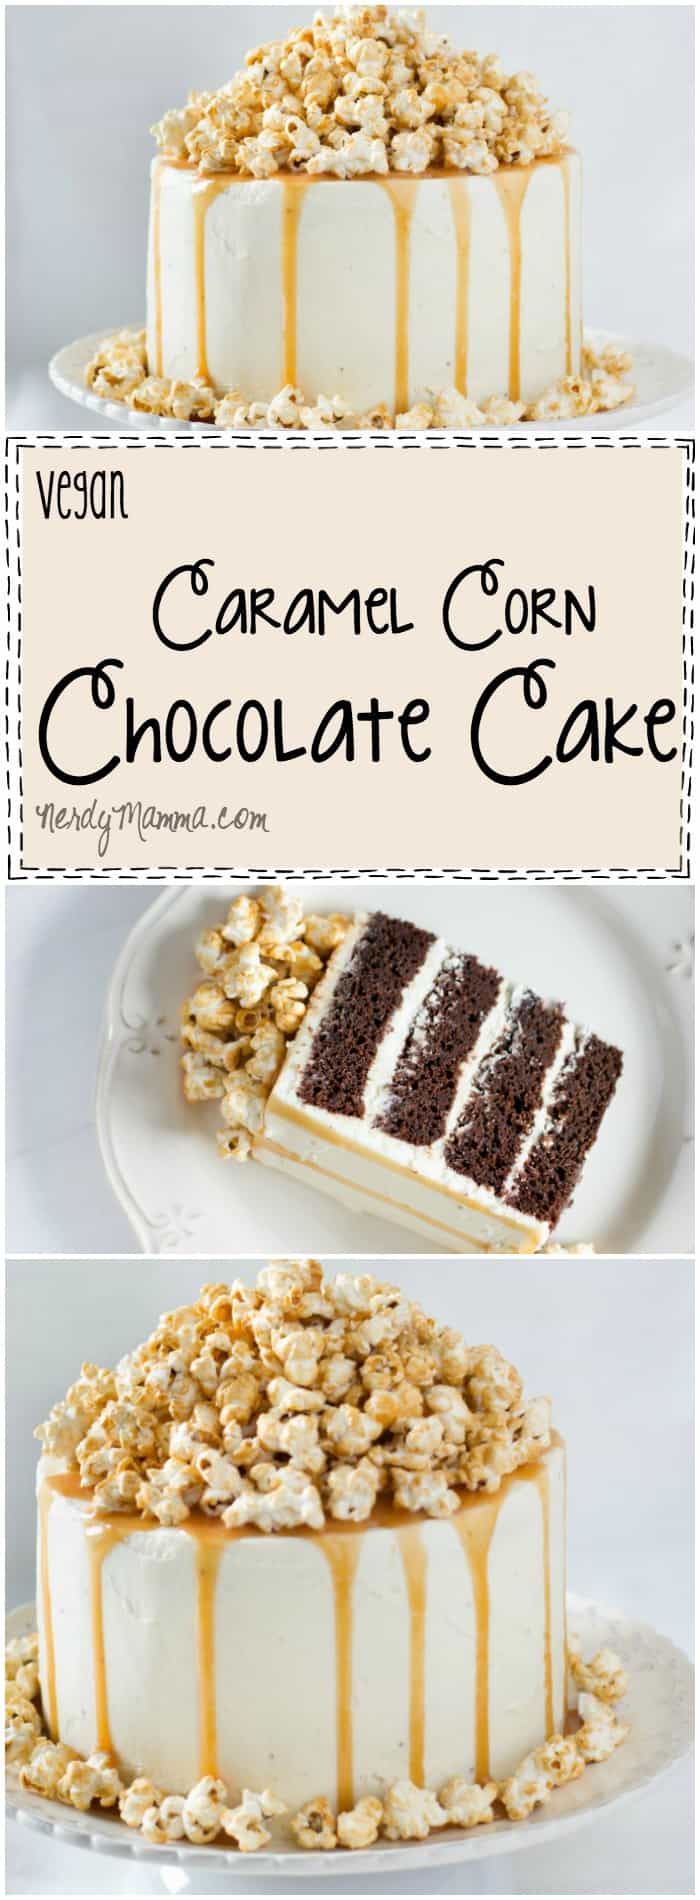 Is Caramel Coloring Gluten-Free